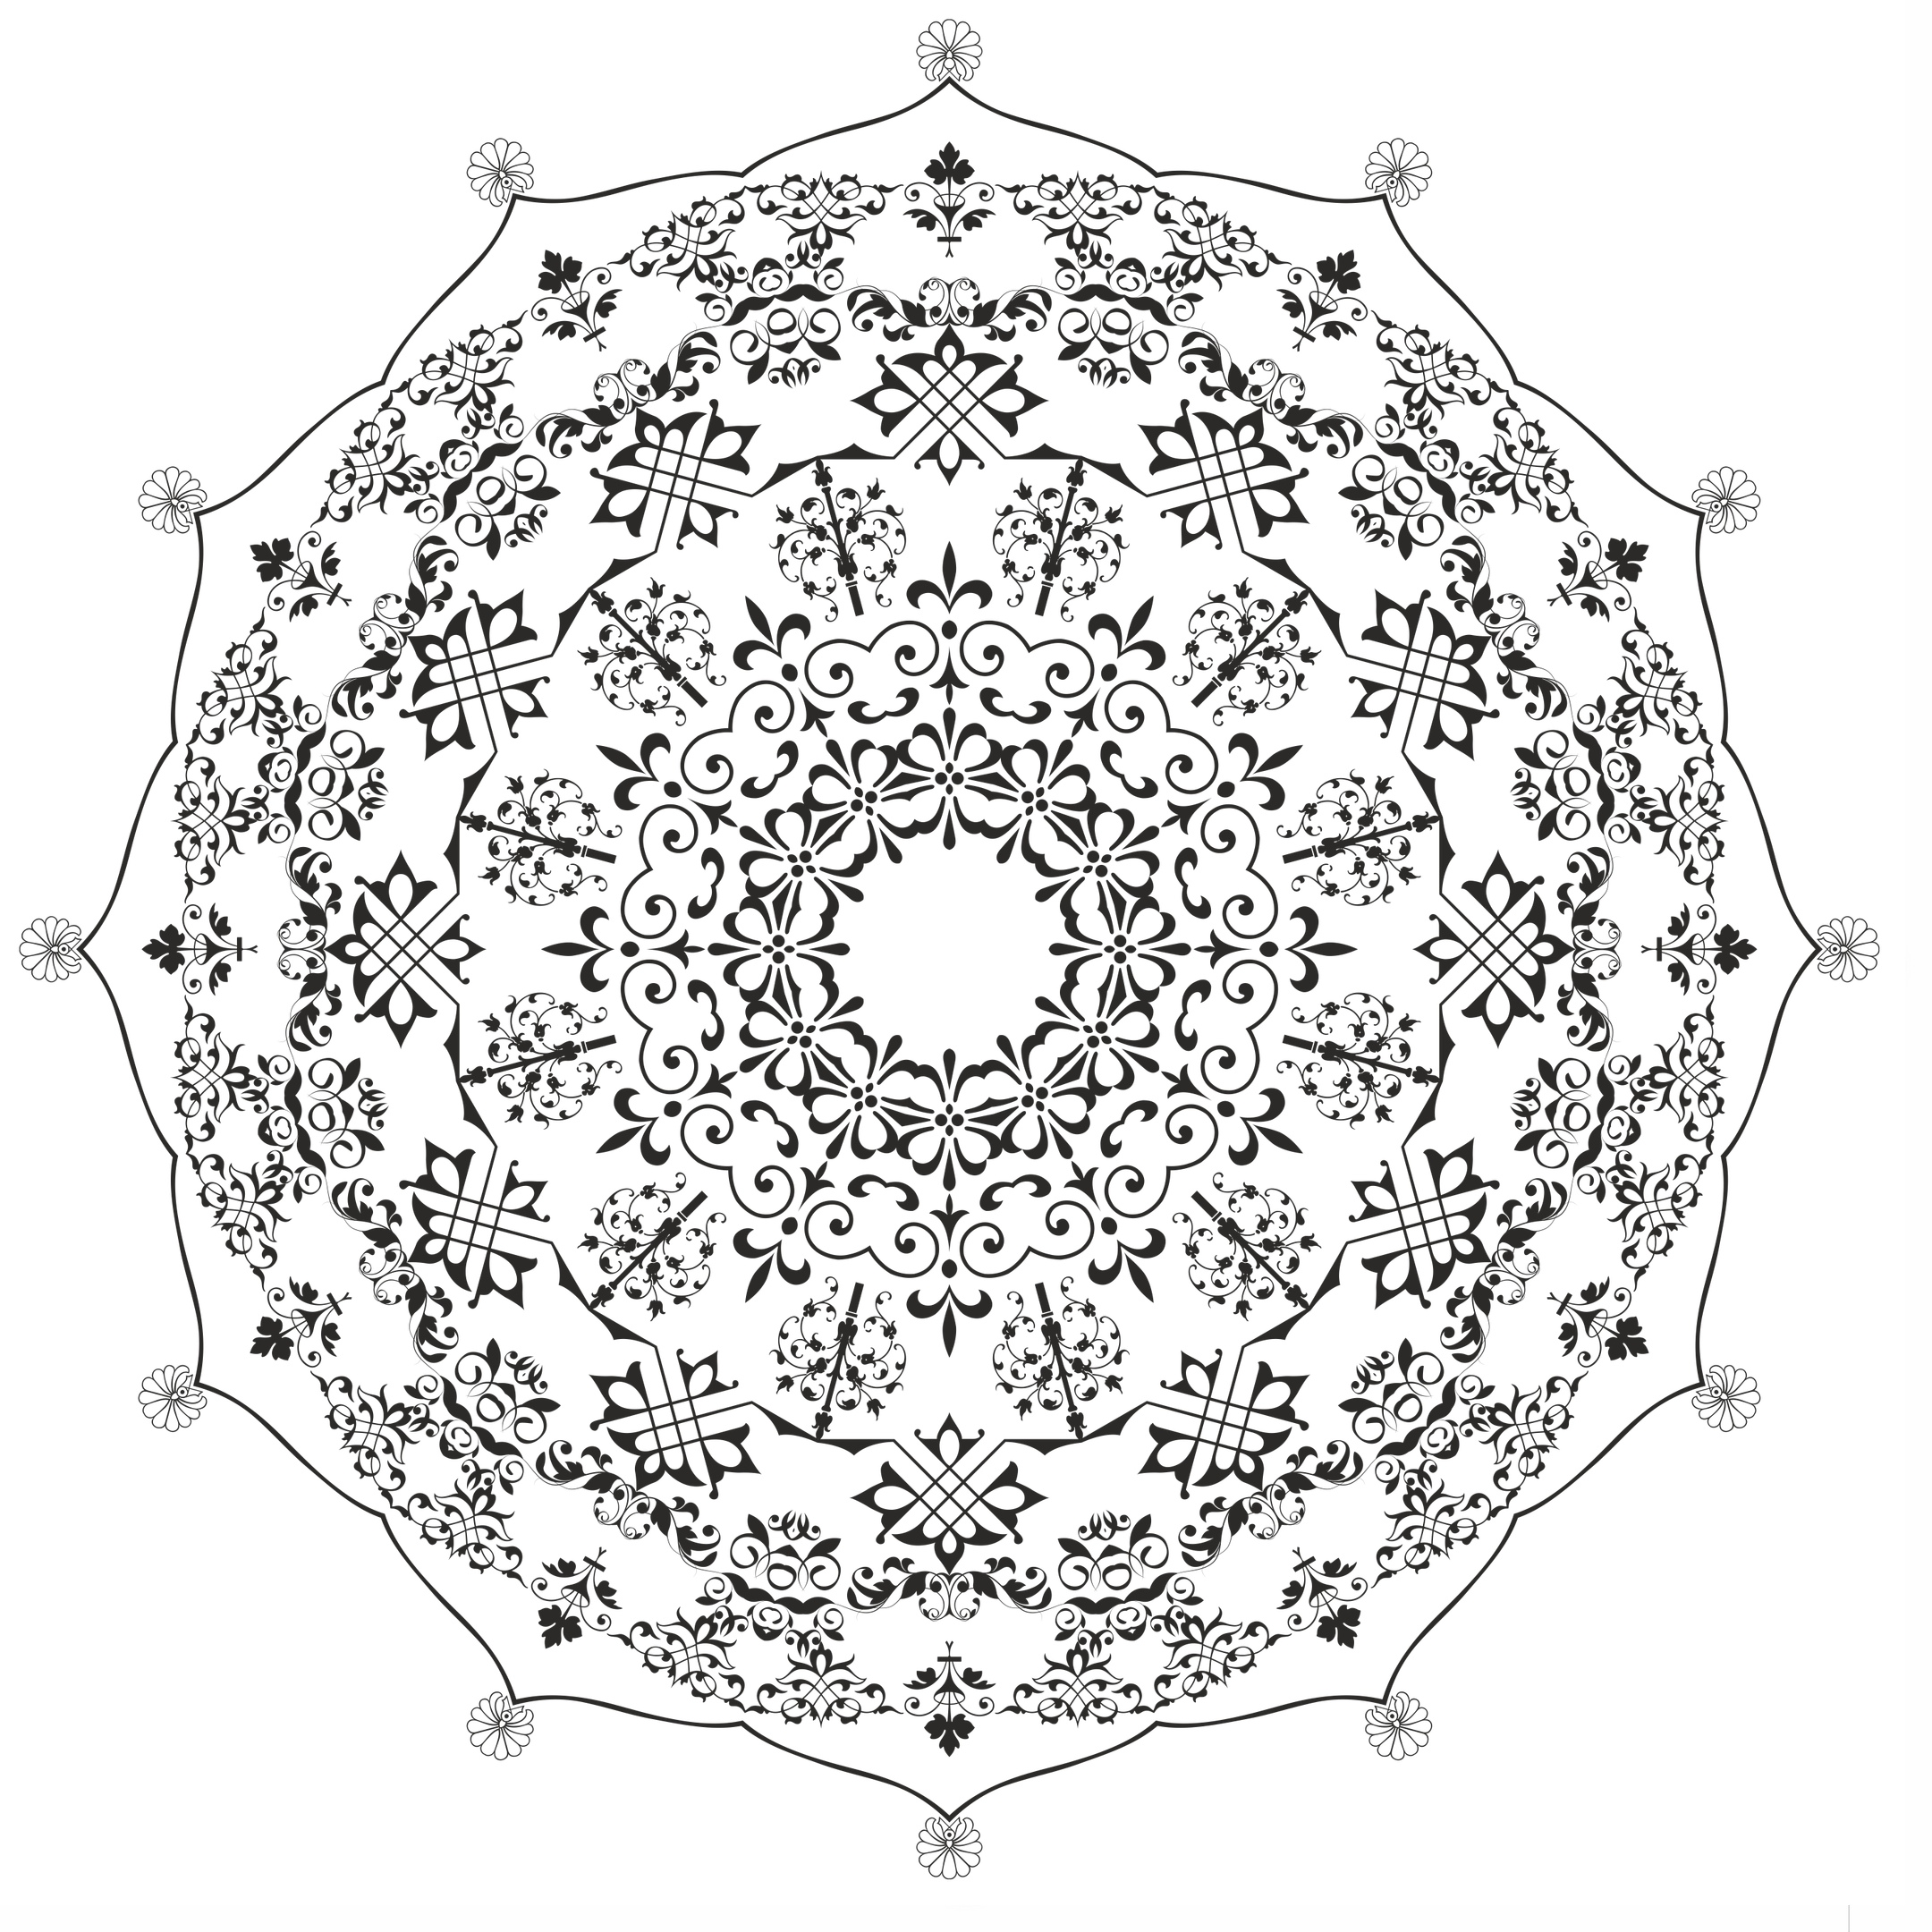 Mandala Round Ornament Design Free Vector